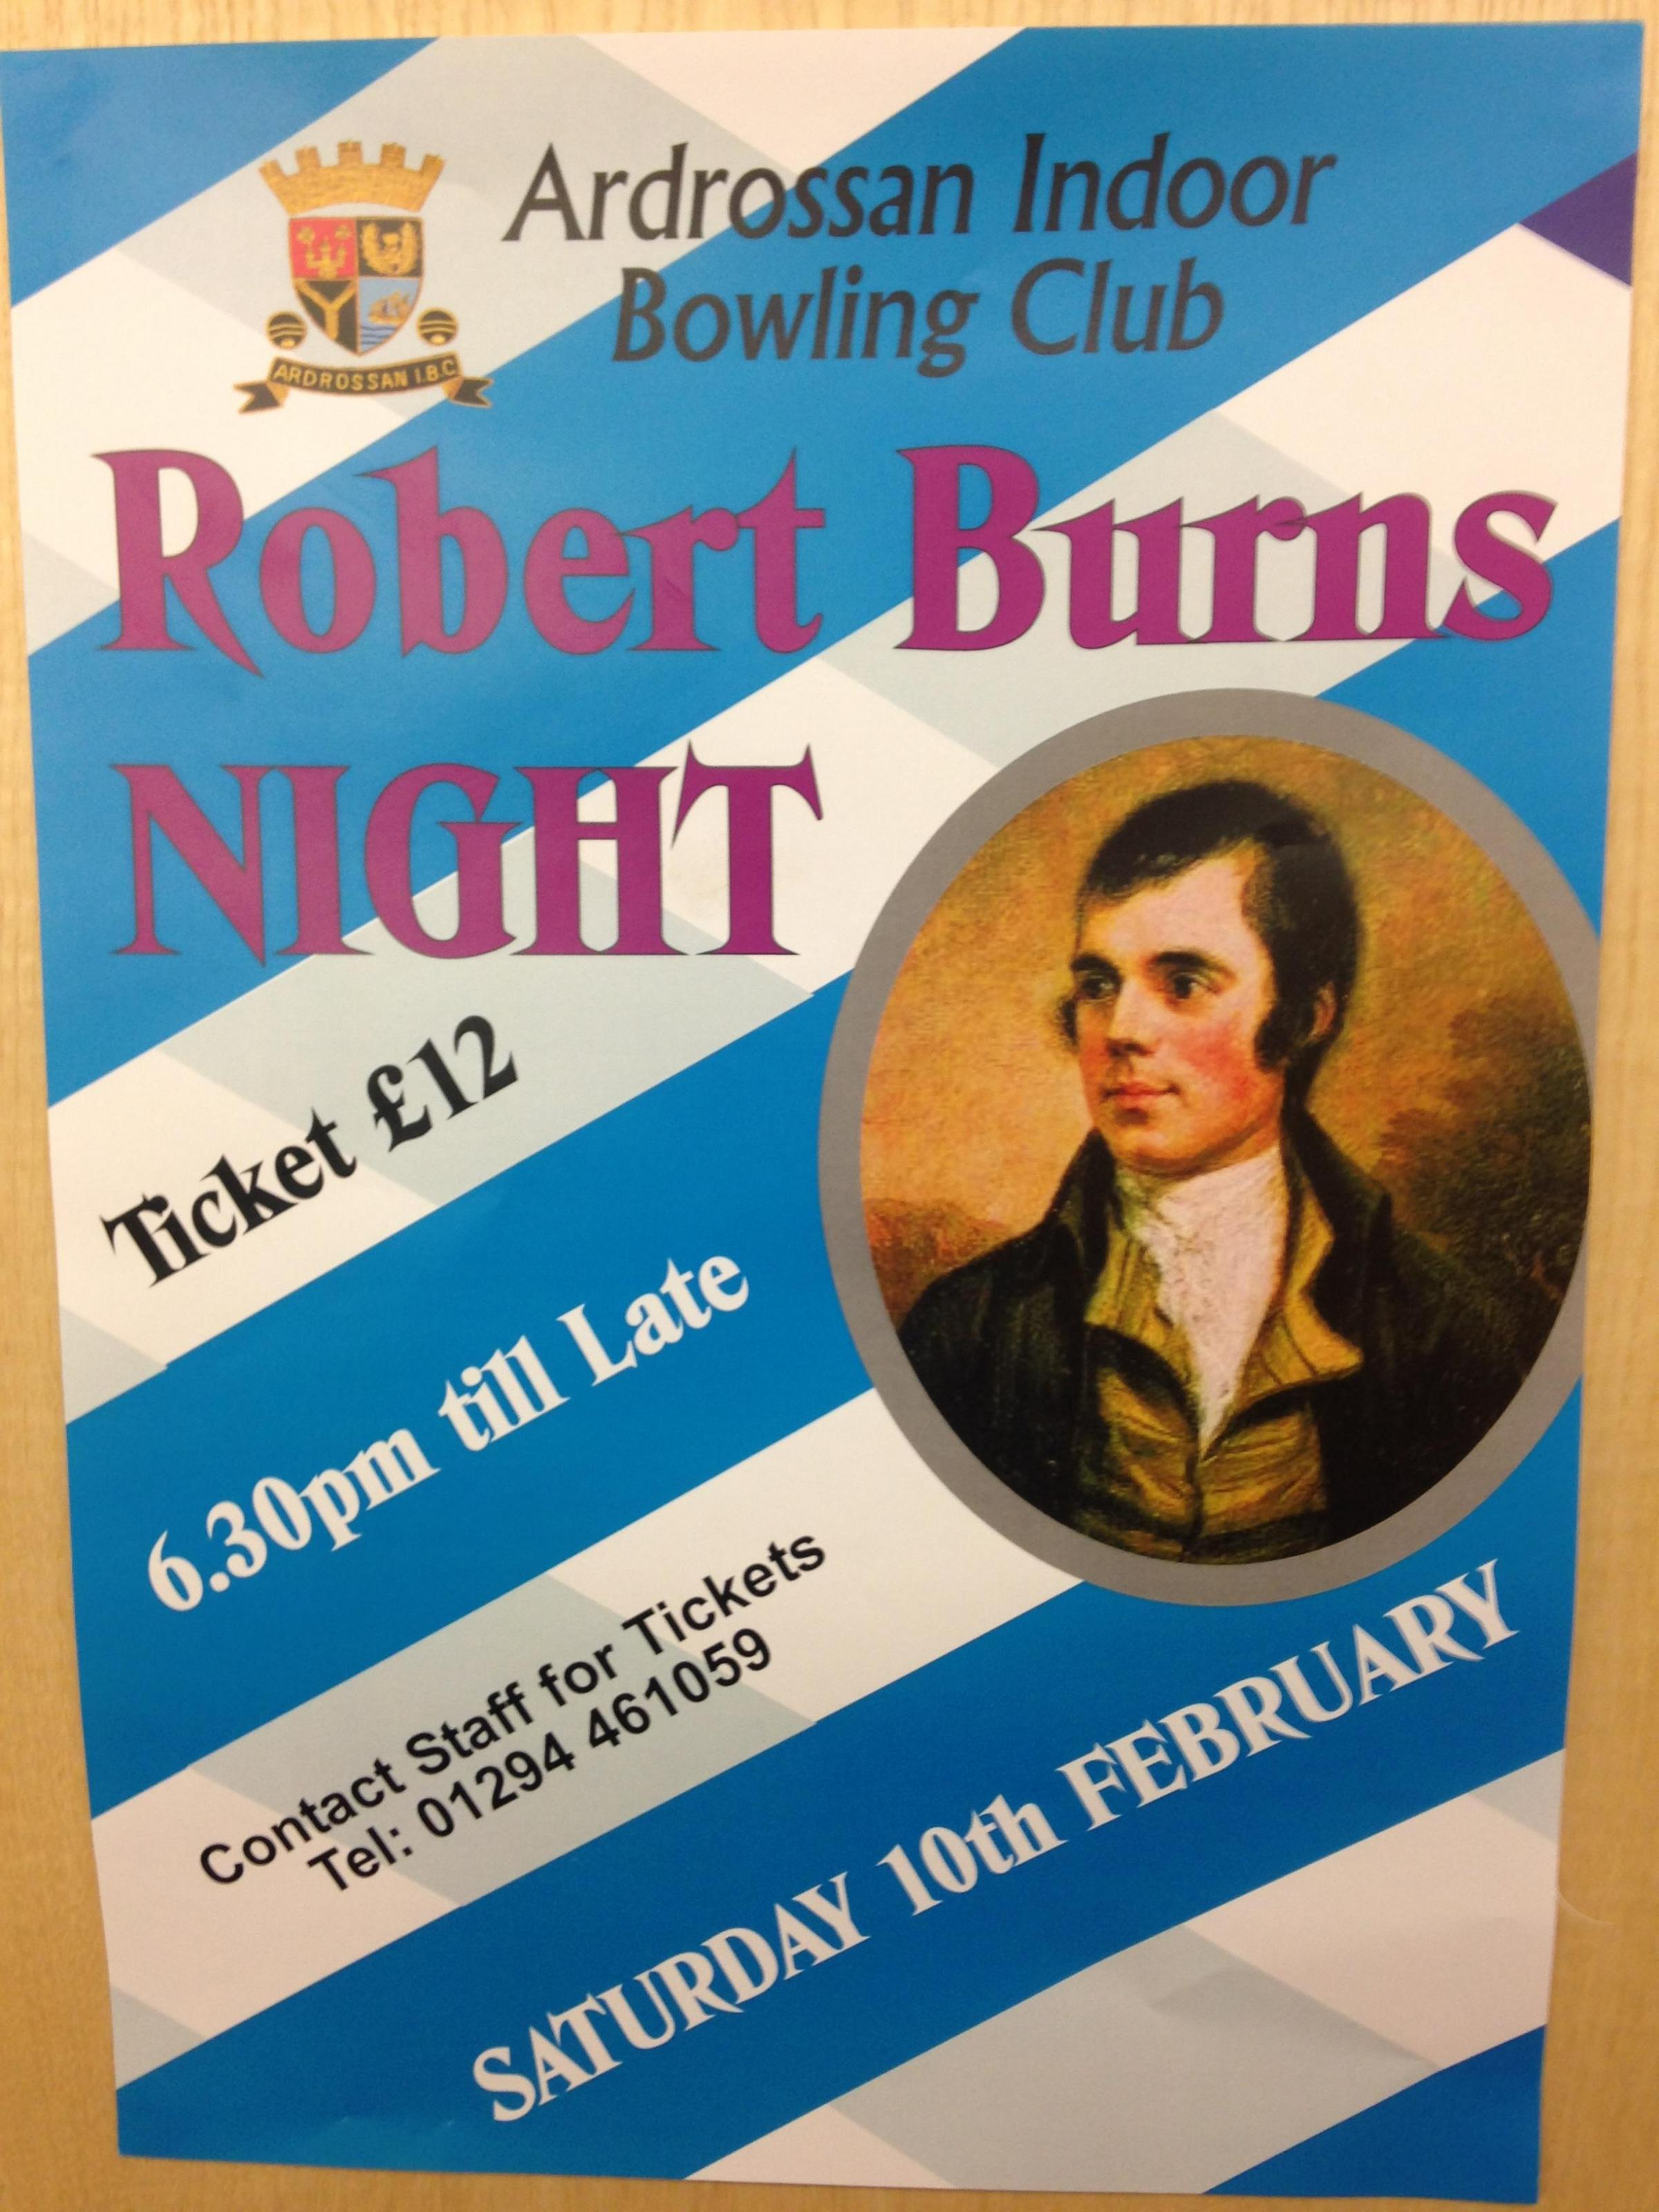 Indoor Bowling Club to hold Burns Supper